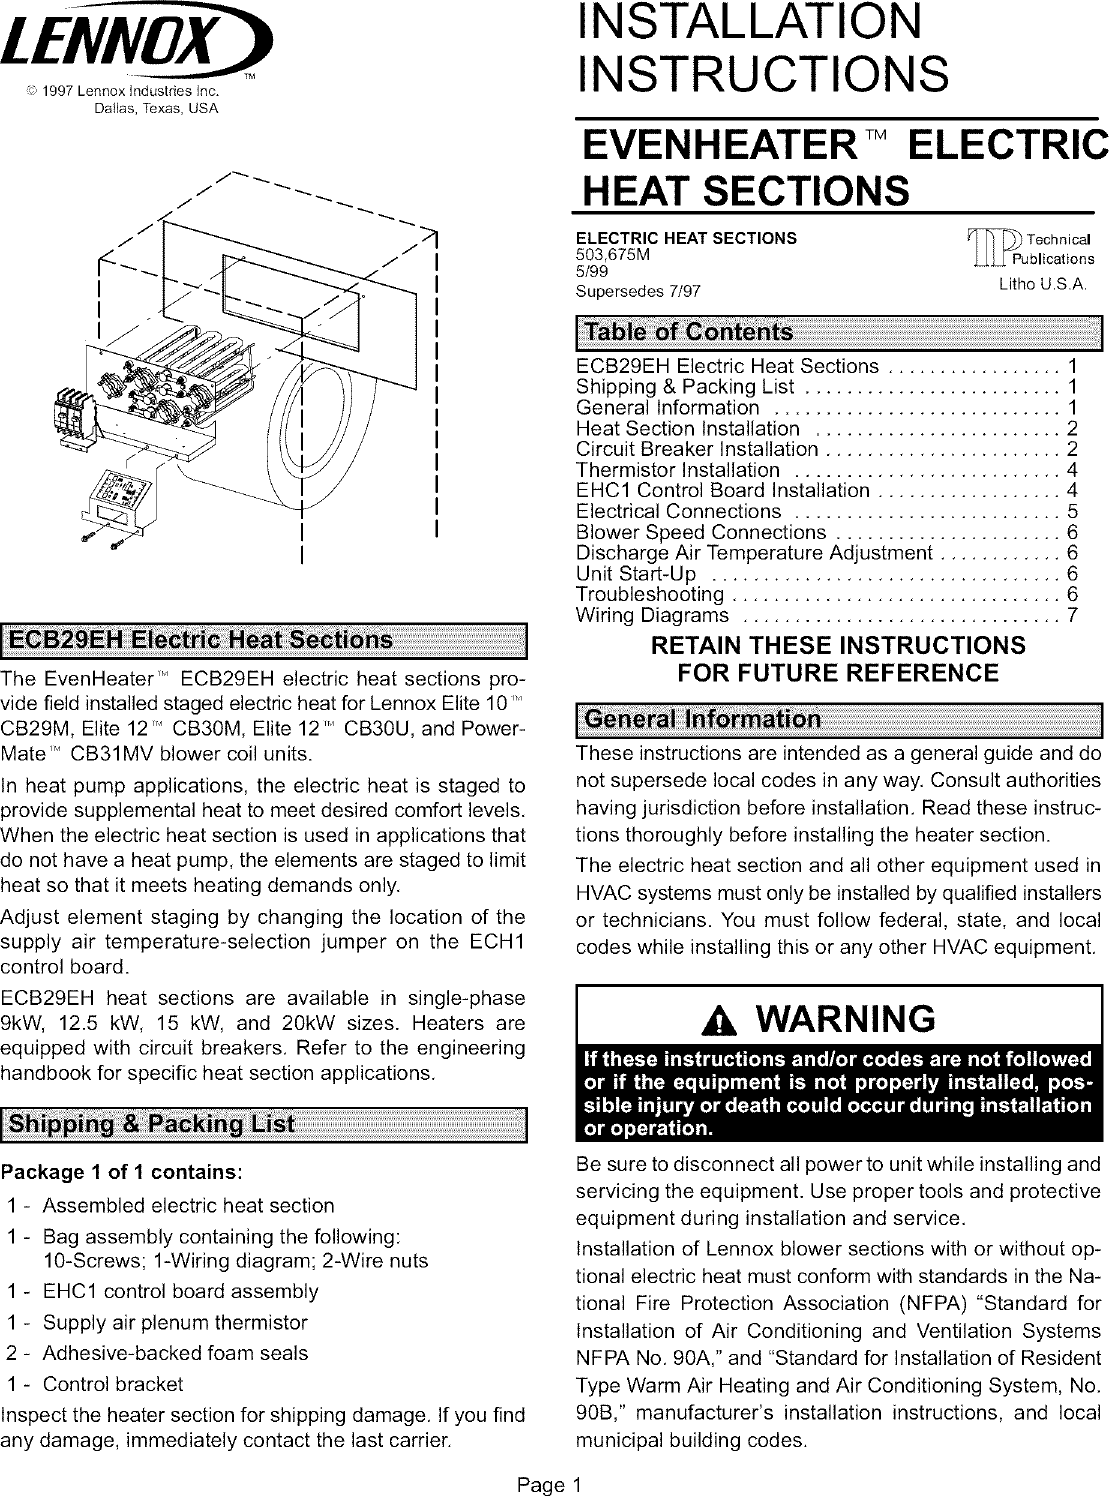 Lennox Air Handler Auxiliary Heater Kit Manual L0805584 Wiring Schematic Page 1 Of 12